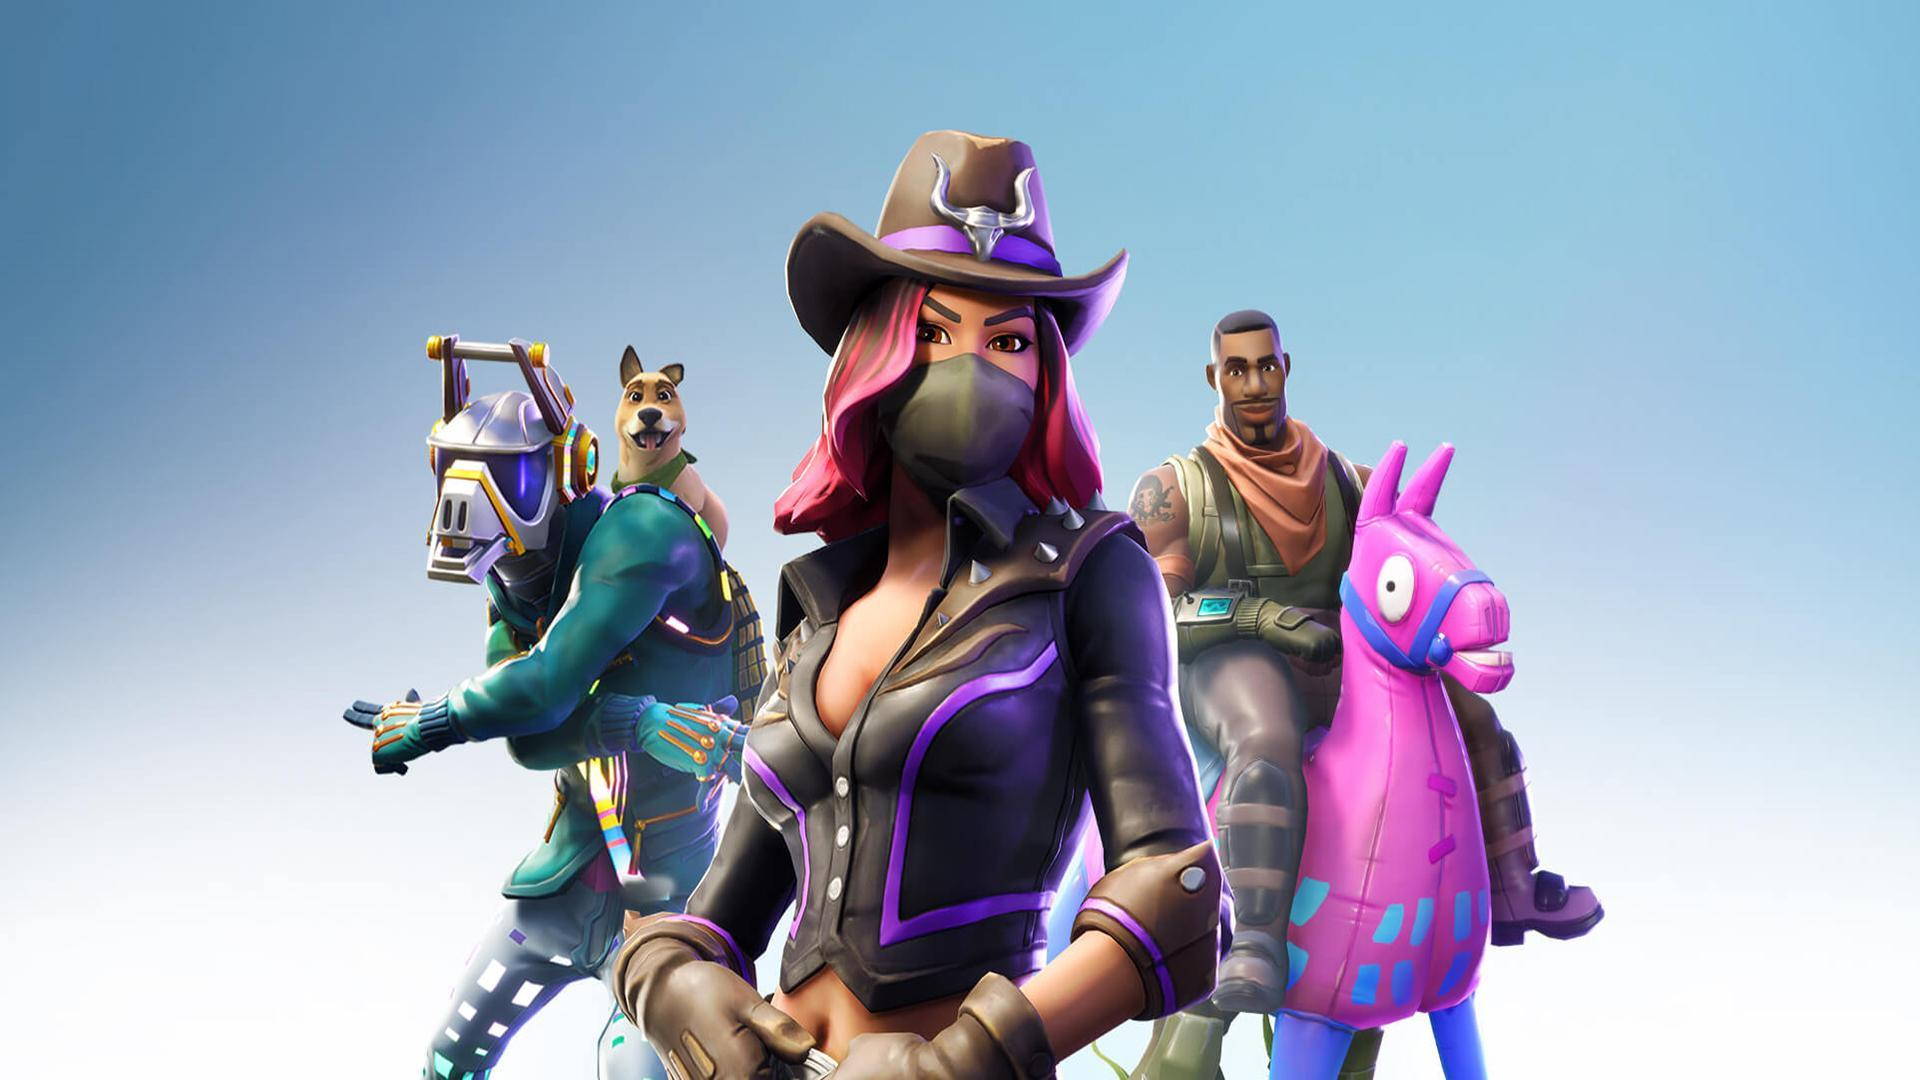 Season 6 'DJ, Calamity and Giddy Up' Wallpaper 1920x1080 : FortNiteBR